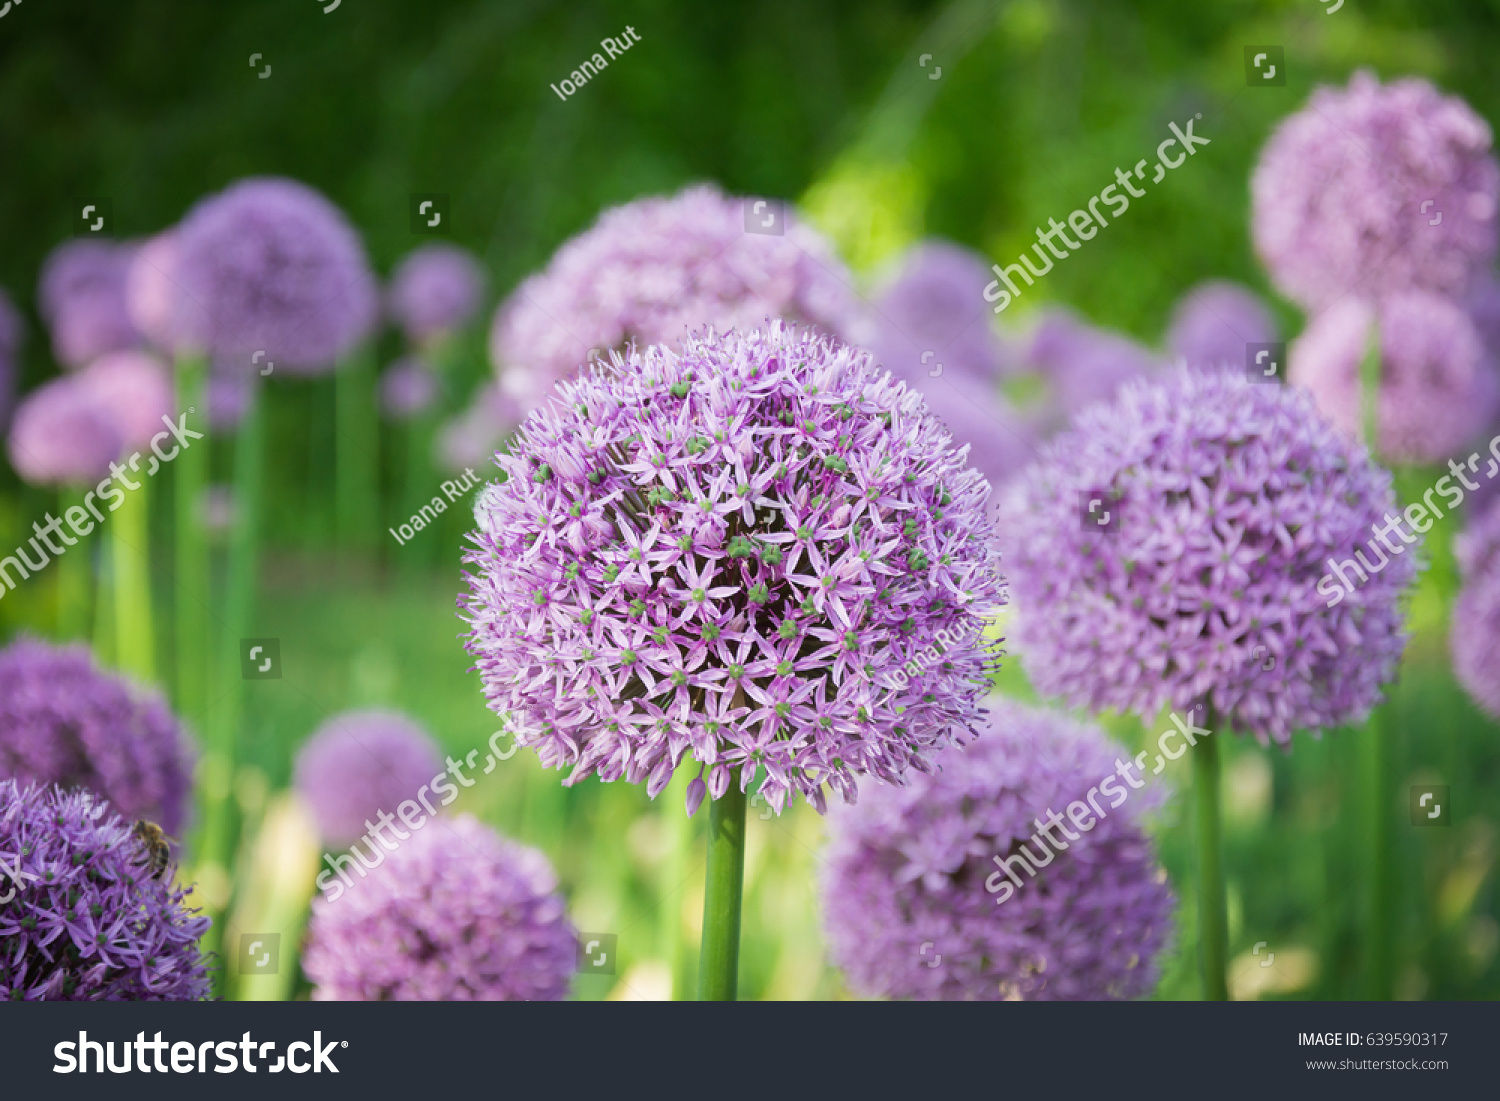 Beautiful purple allium flower green natural stock photo edit now beautiful purple allium flower with green natural background perfect image for pink alliums flowers mightylinksfo